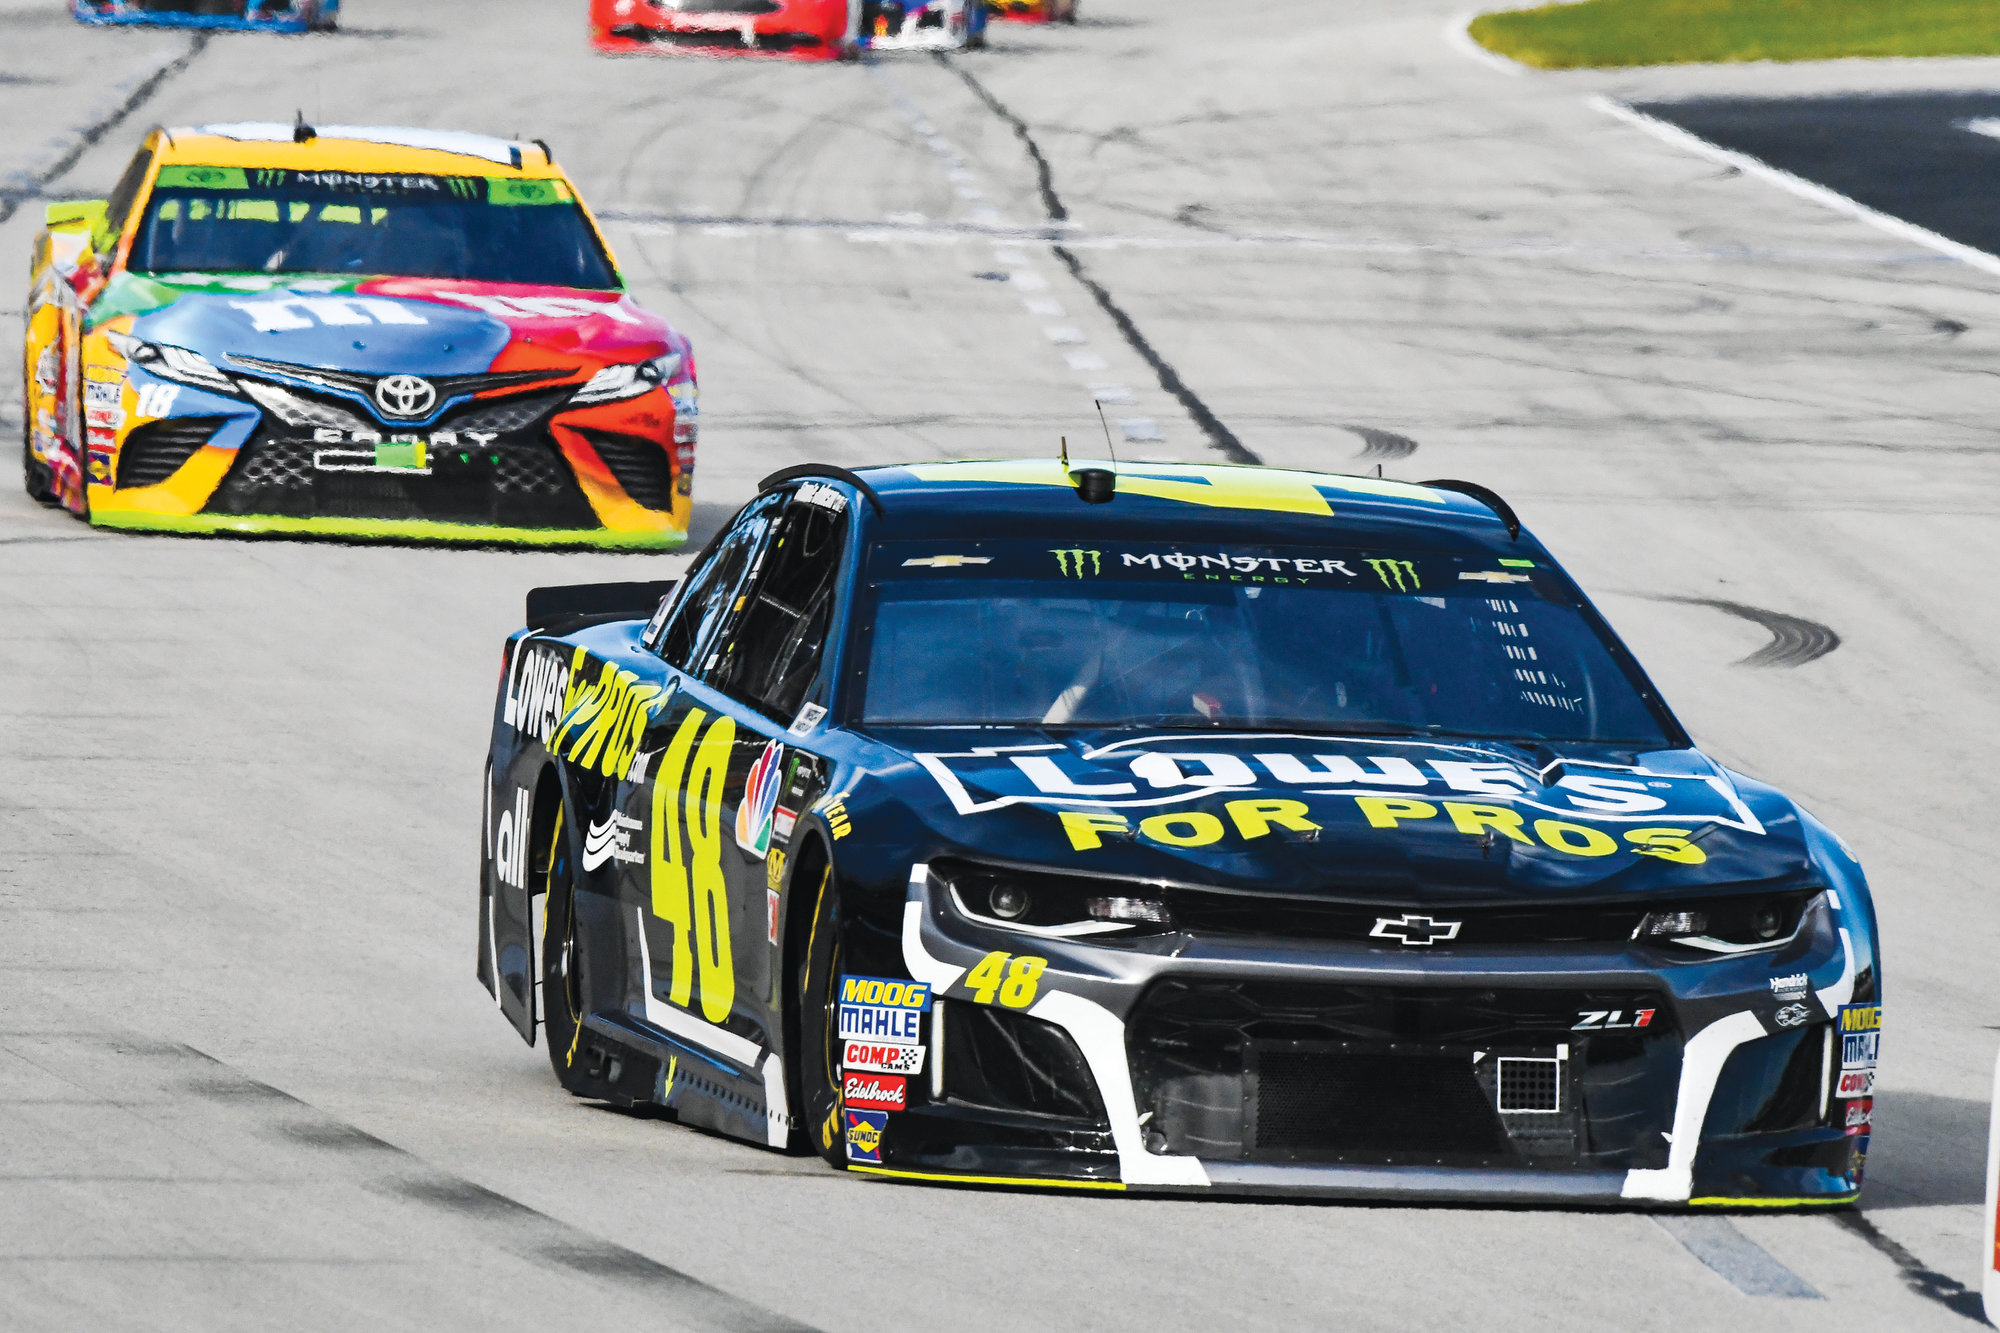 Jimmie Johnson (48) leads  Kyle Busch (18)  into Turn 1 during the AAA Texas 500 at  Texas Motor  Speedway on Sunday in Fort Worth, Texas. Johnson was wrongly sent to the back of the field prior to the start of the race.